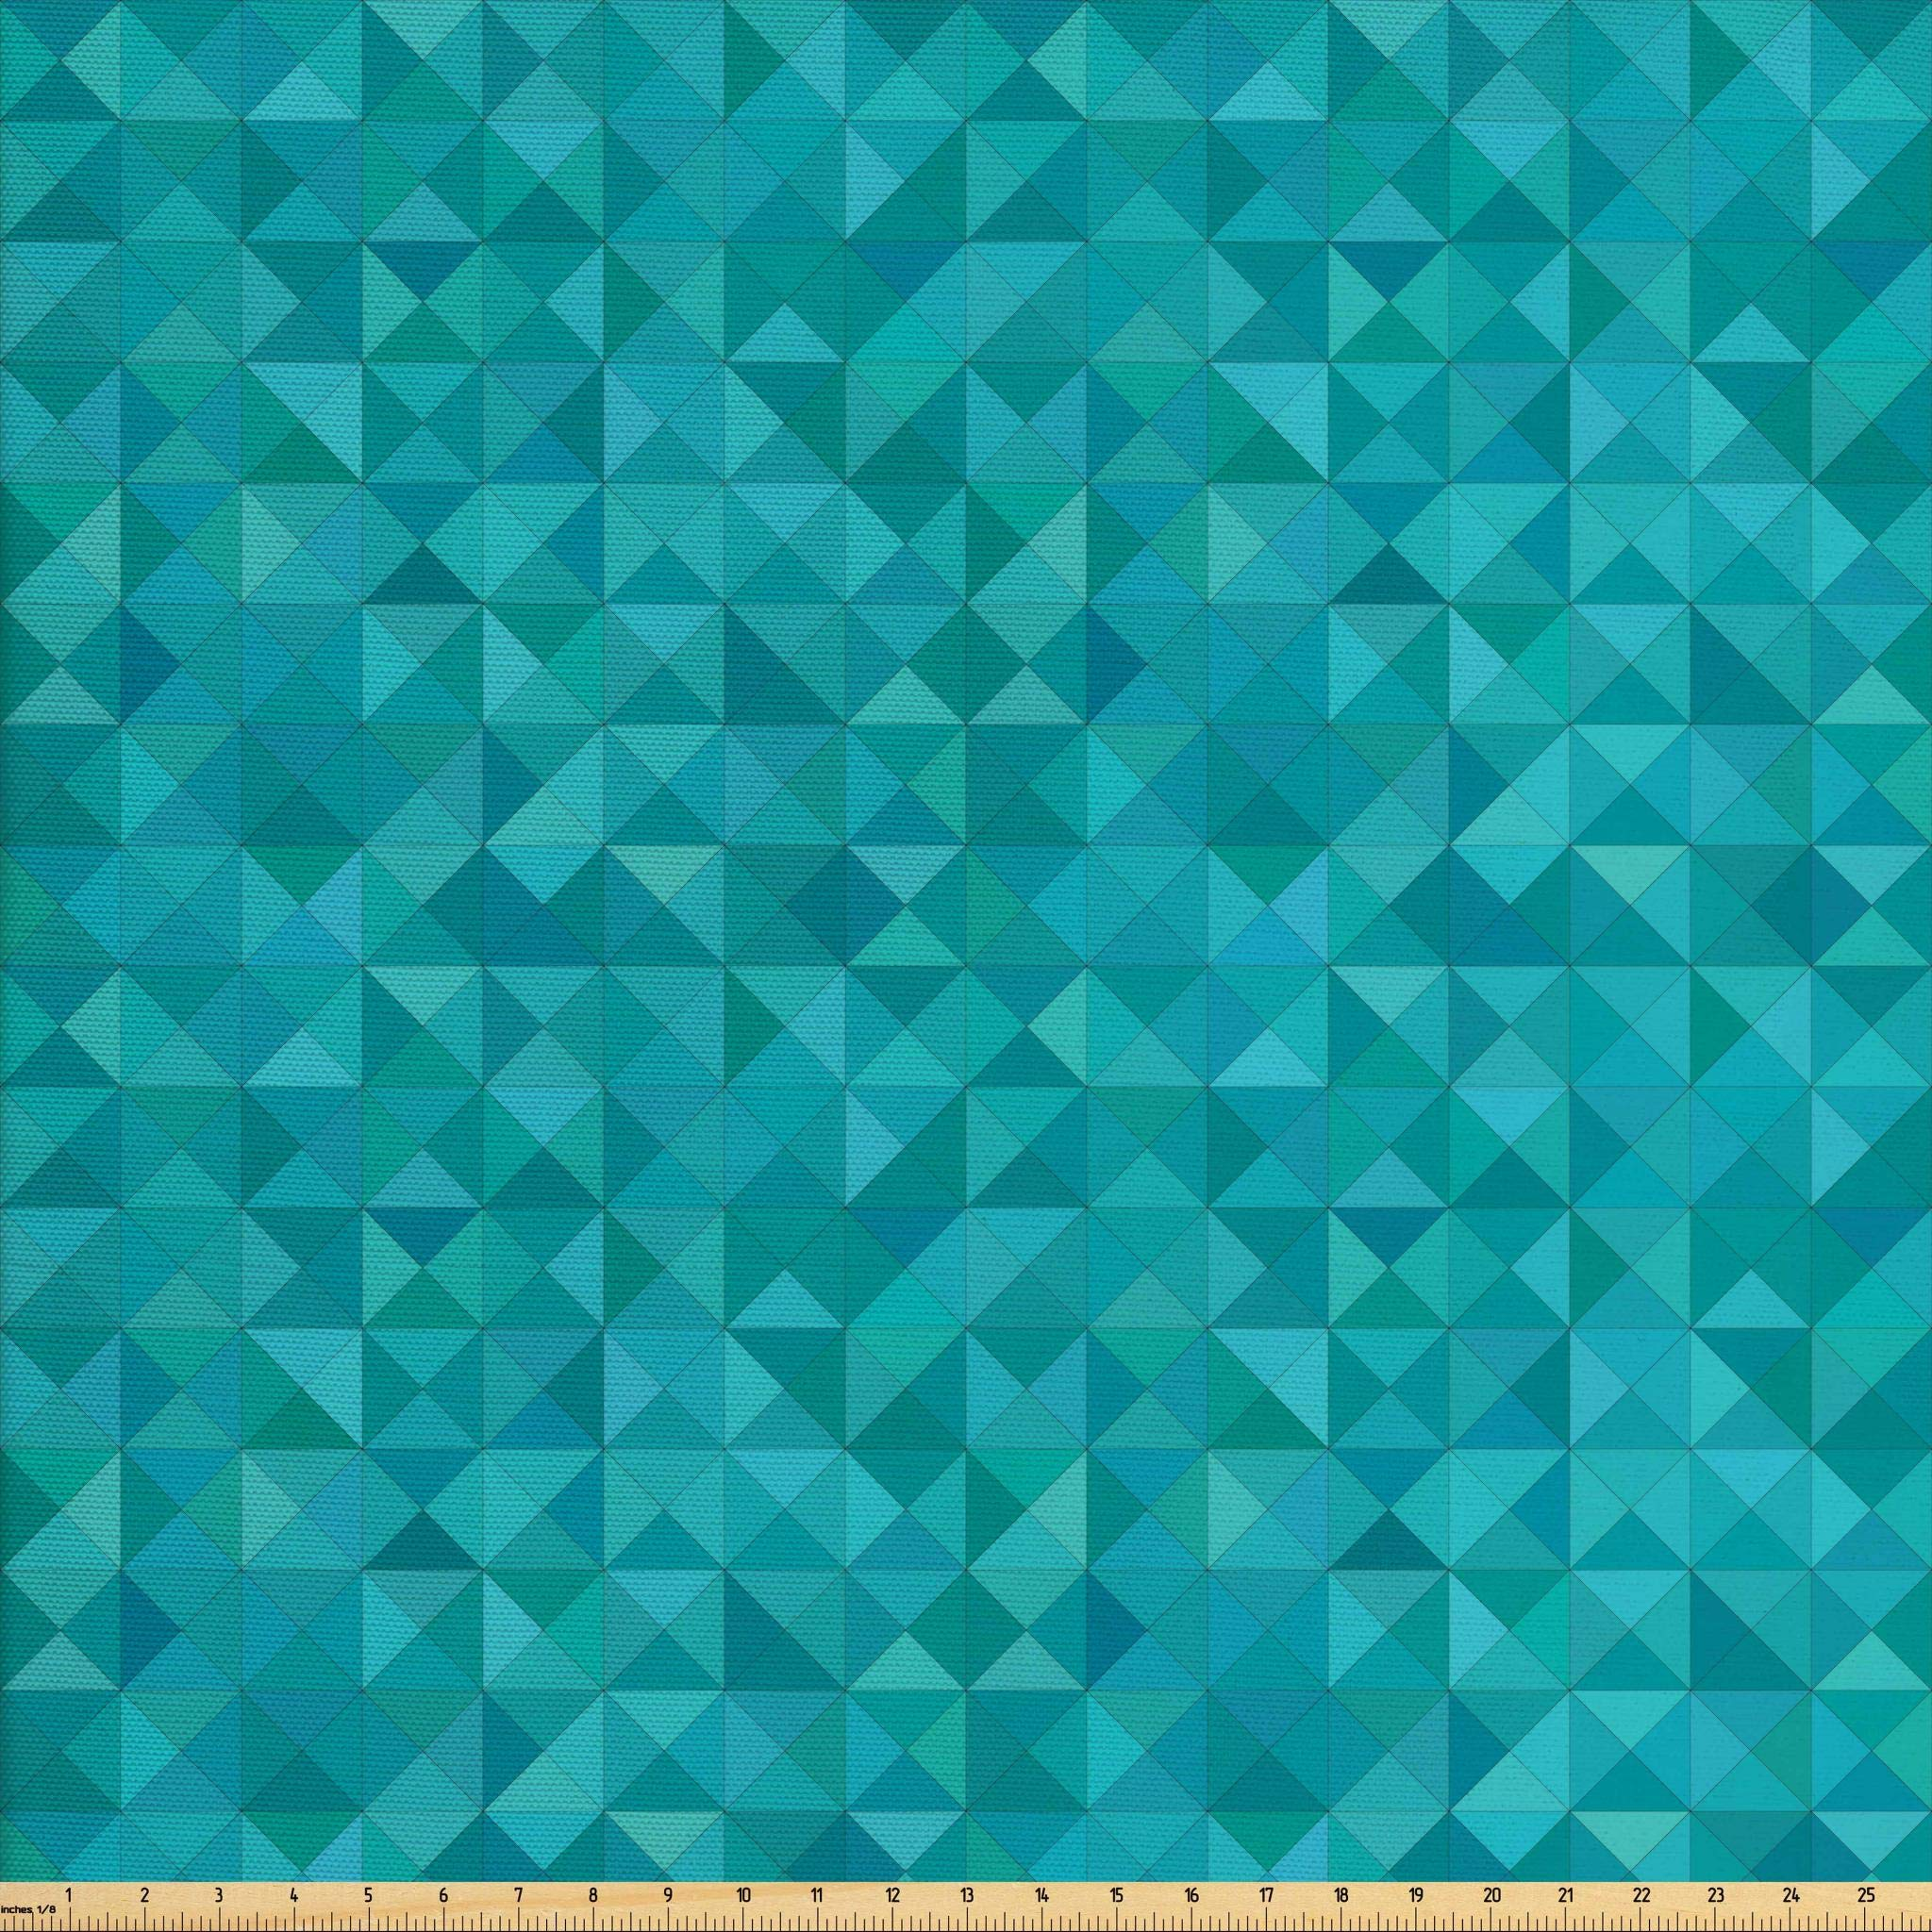 Ambesonne Teal Fabric by The Yard, Geometrical Shapes Triangles Squares Modern Abstract Art Different Shades of Blue, Decorative Fabric for Upholstery and Home Accents,10 Yards, Turquoise Aqua